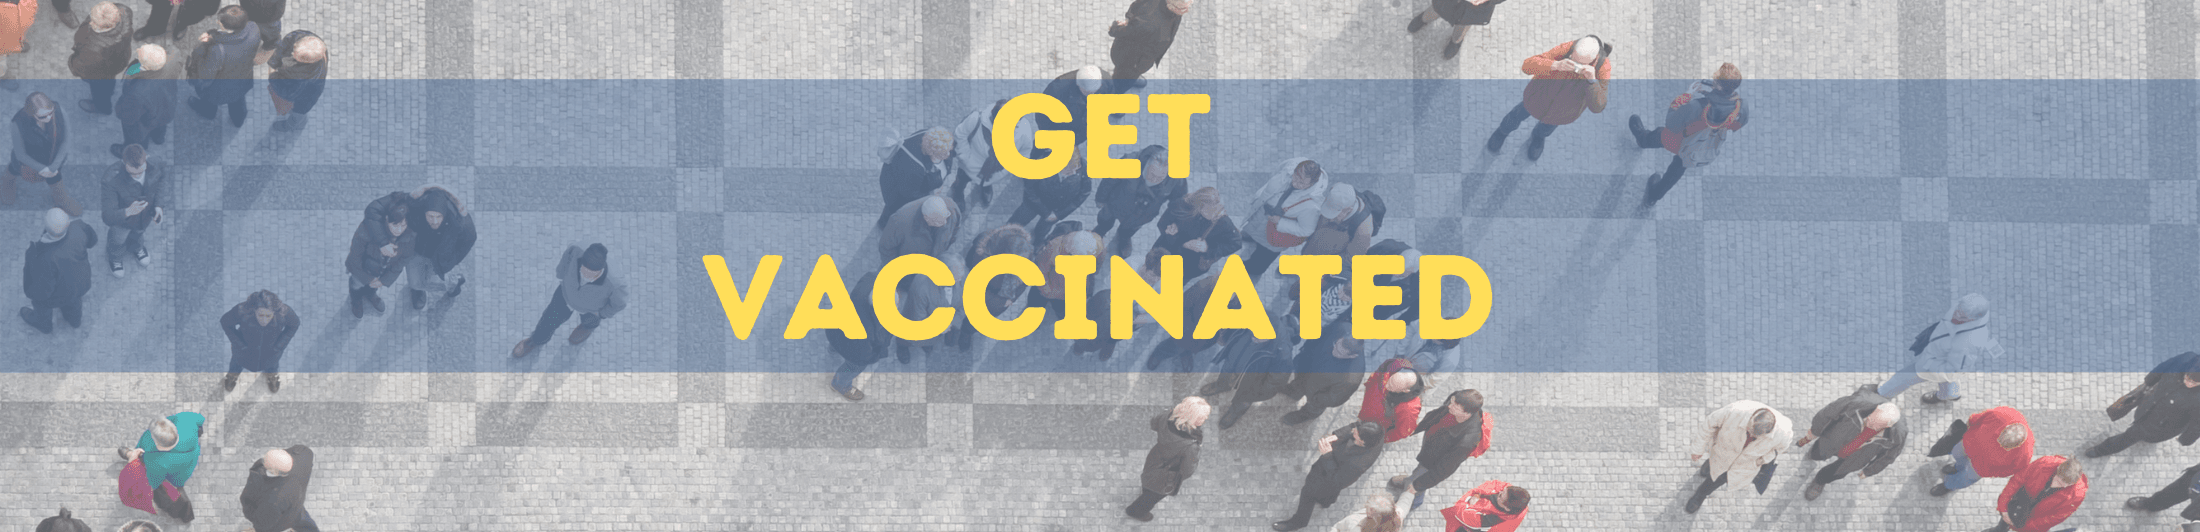 get vaccinated header